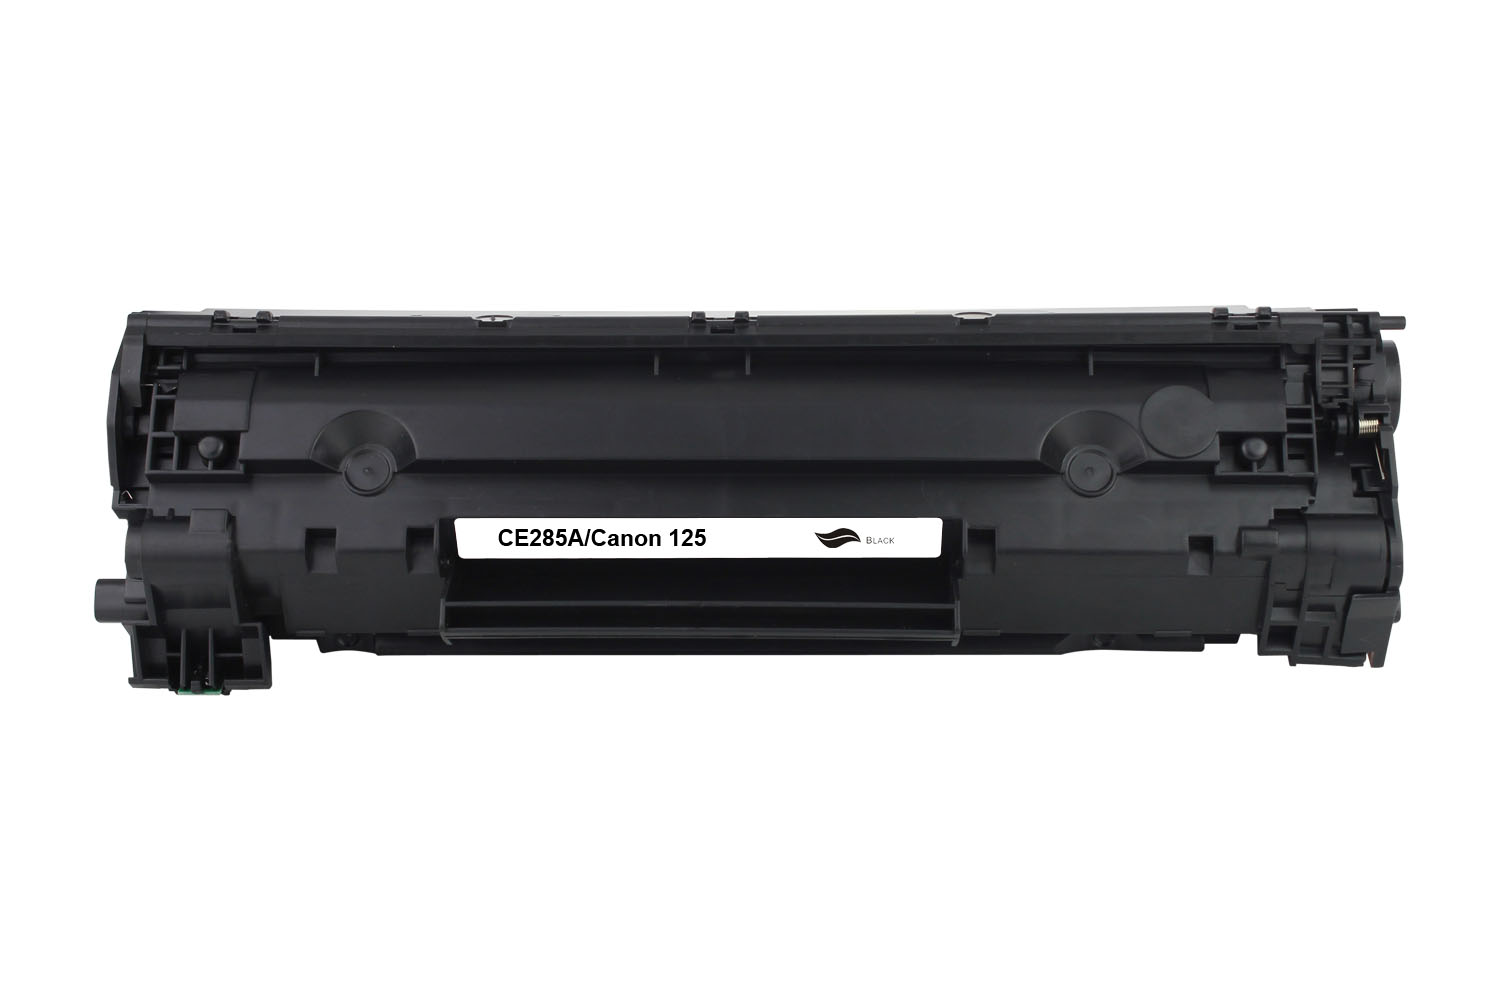 3484B001AA MF3010 Black Ink /& Toner USA Compatible Toner Replacement for Canon 125 Works with: imageCLASS LB P6000 CRG 125